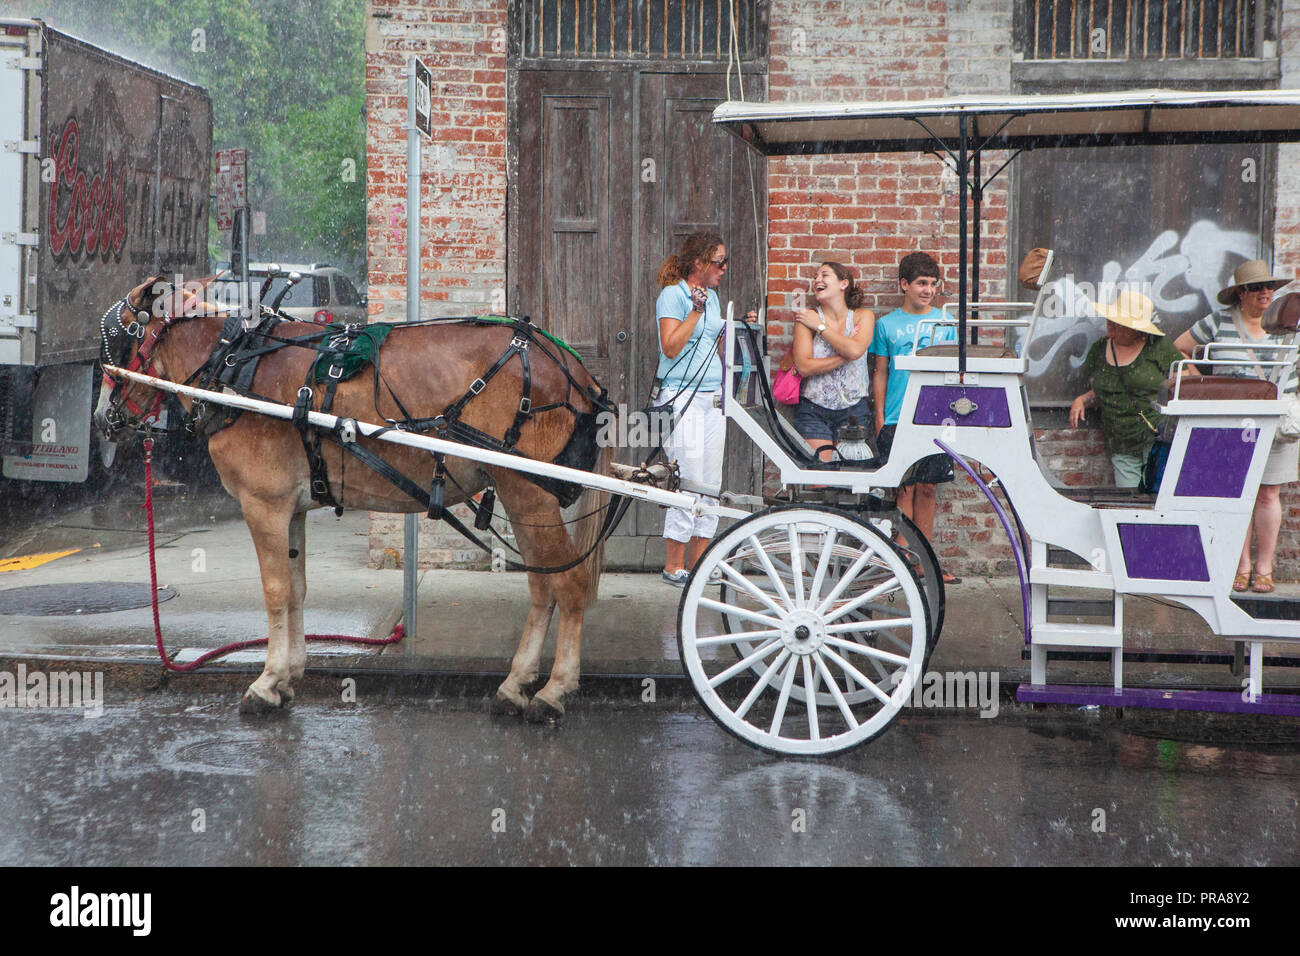 Horse and buggy tour rides along Bourbon Street, New Orleans, Louisiana, USA. - Stock Image